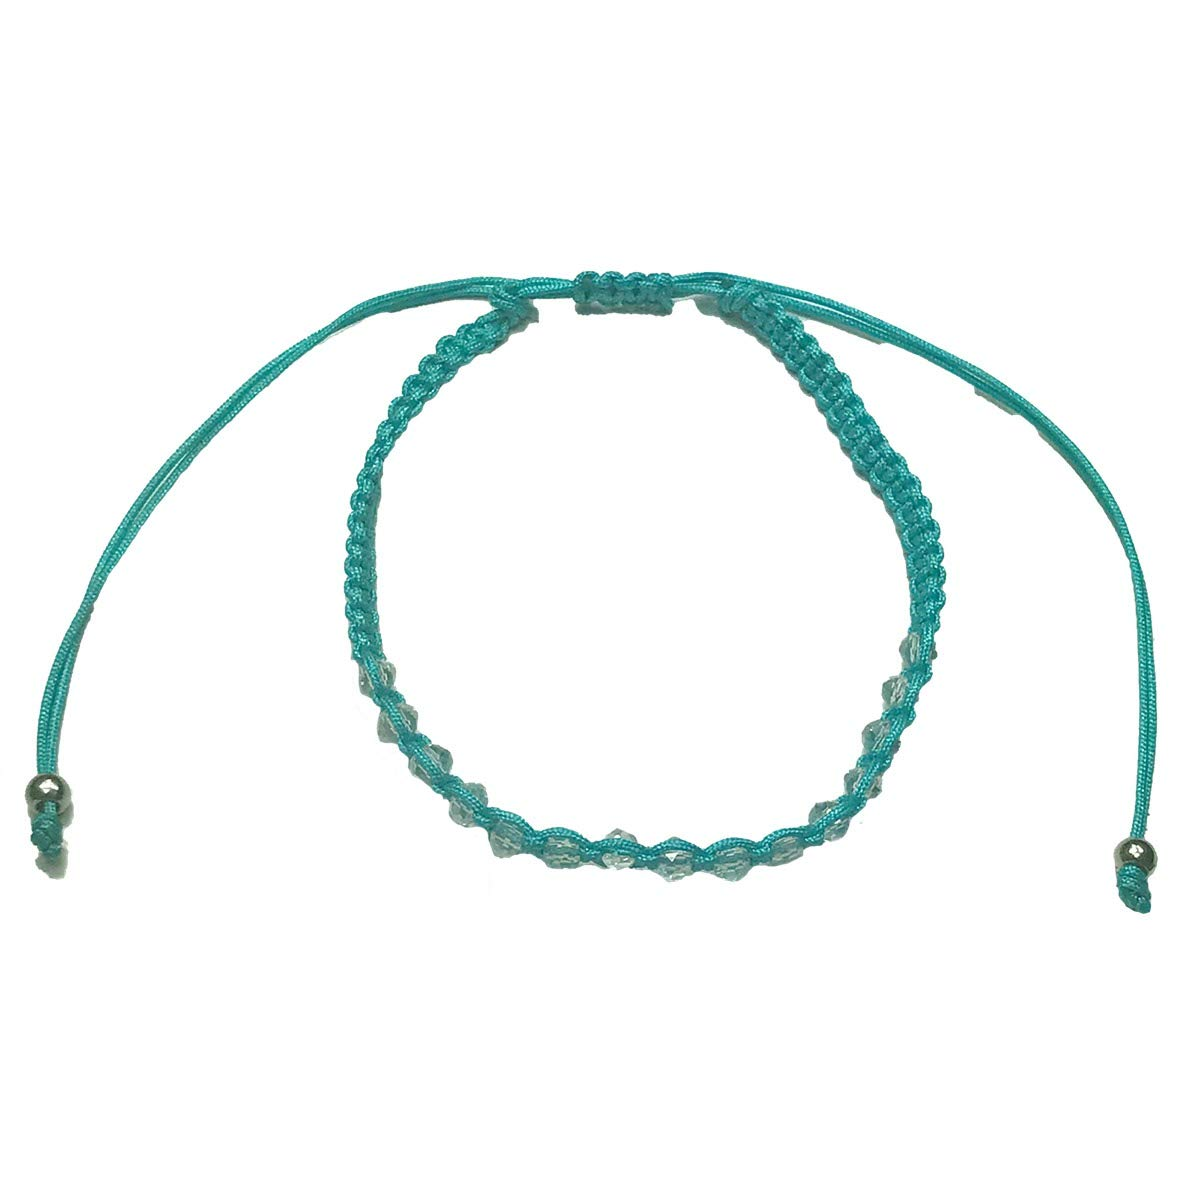 Molly /& Rose Girls Pastel Turquoise Corded Anklet with Clear Beads